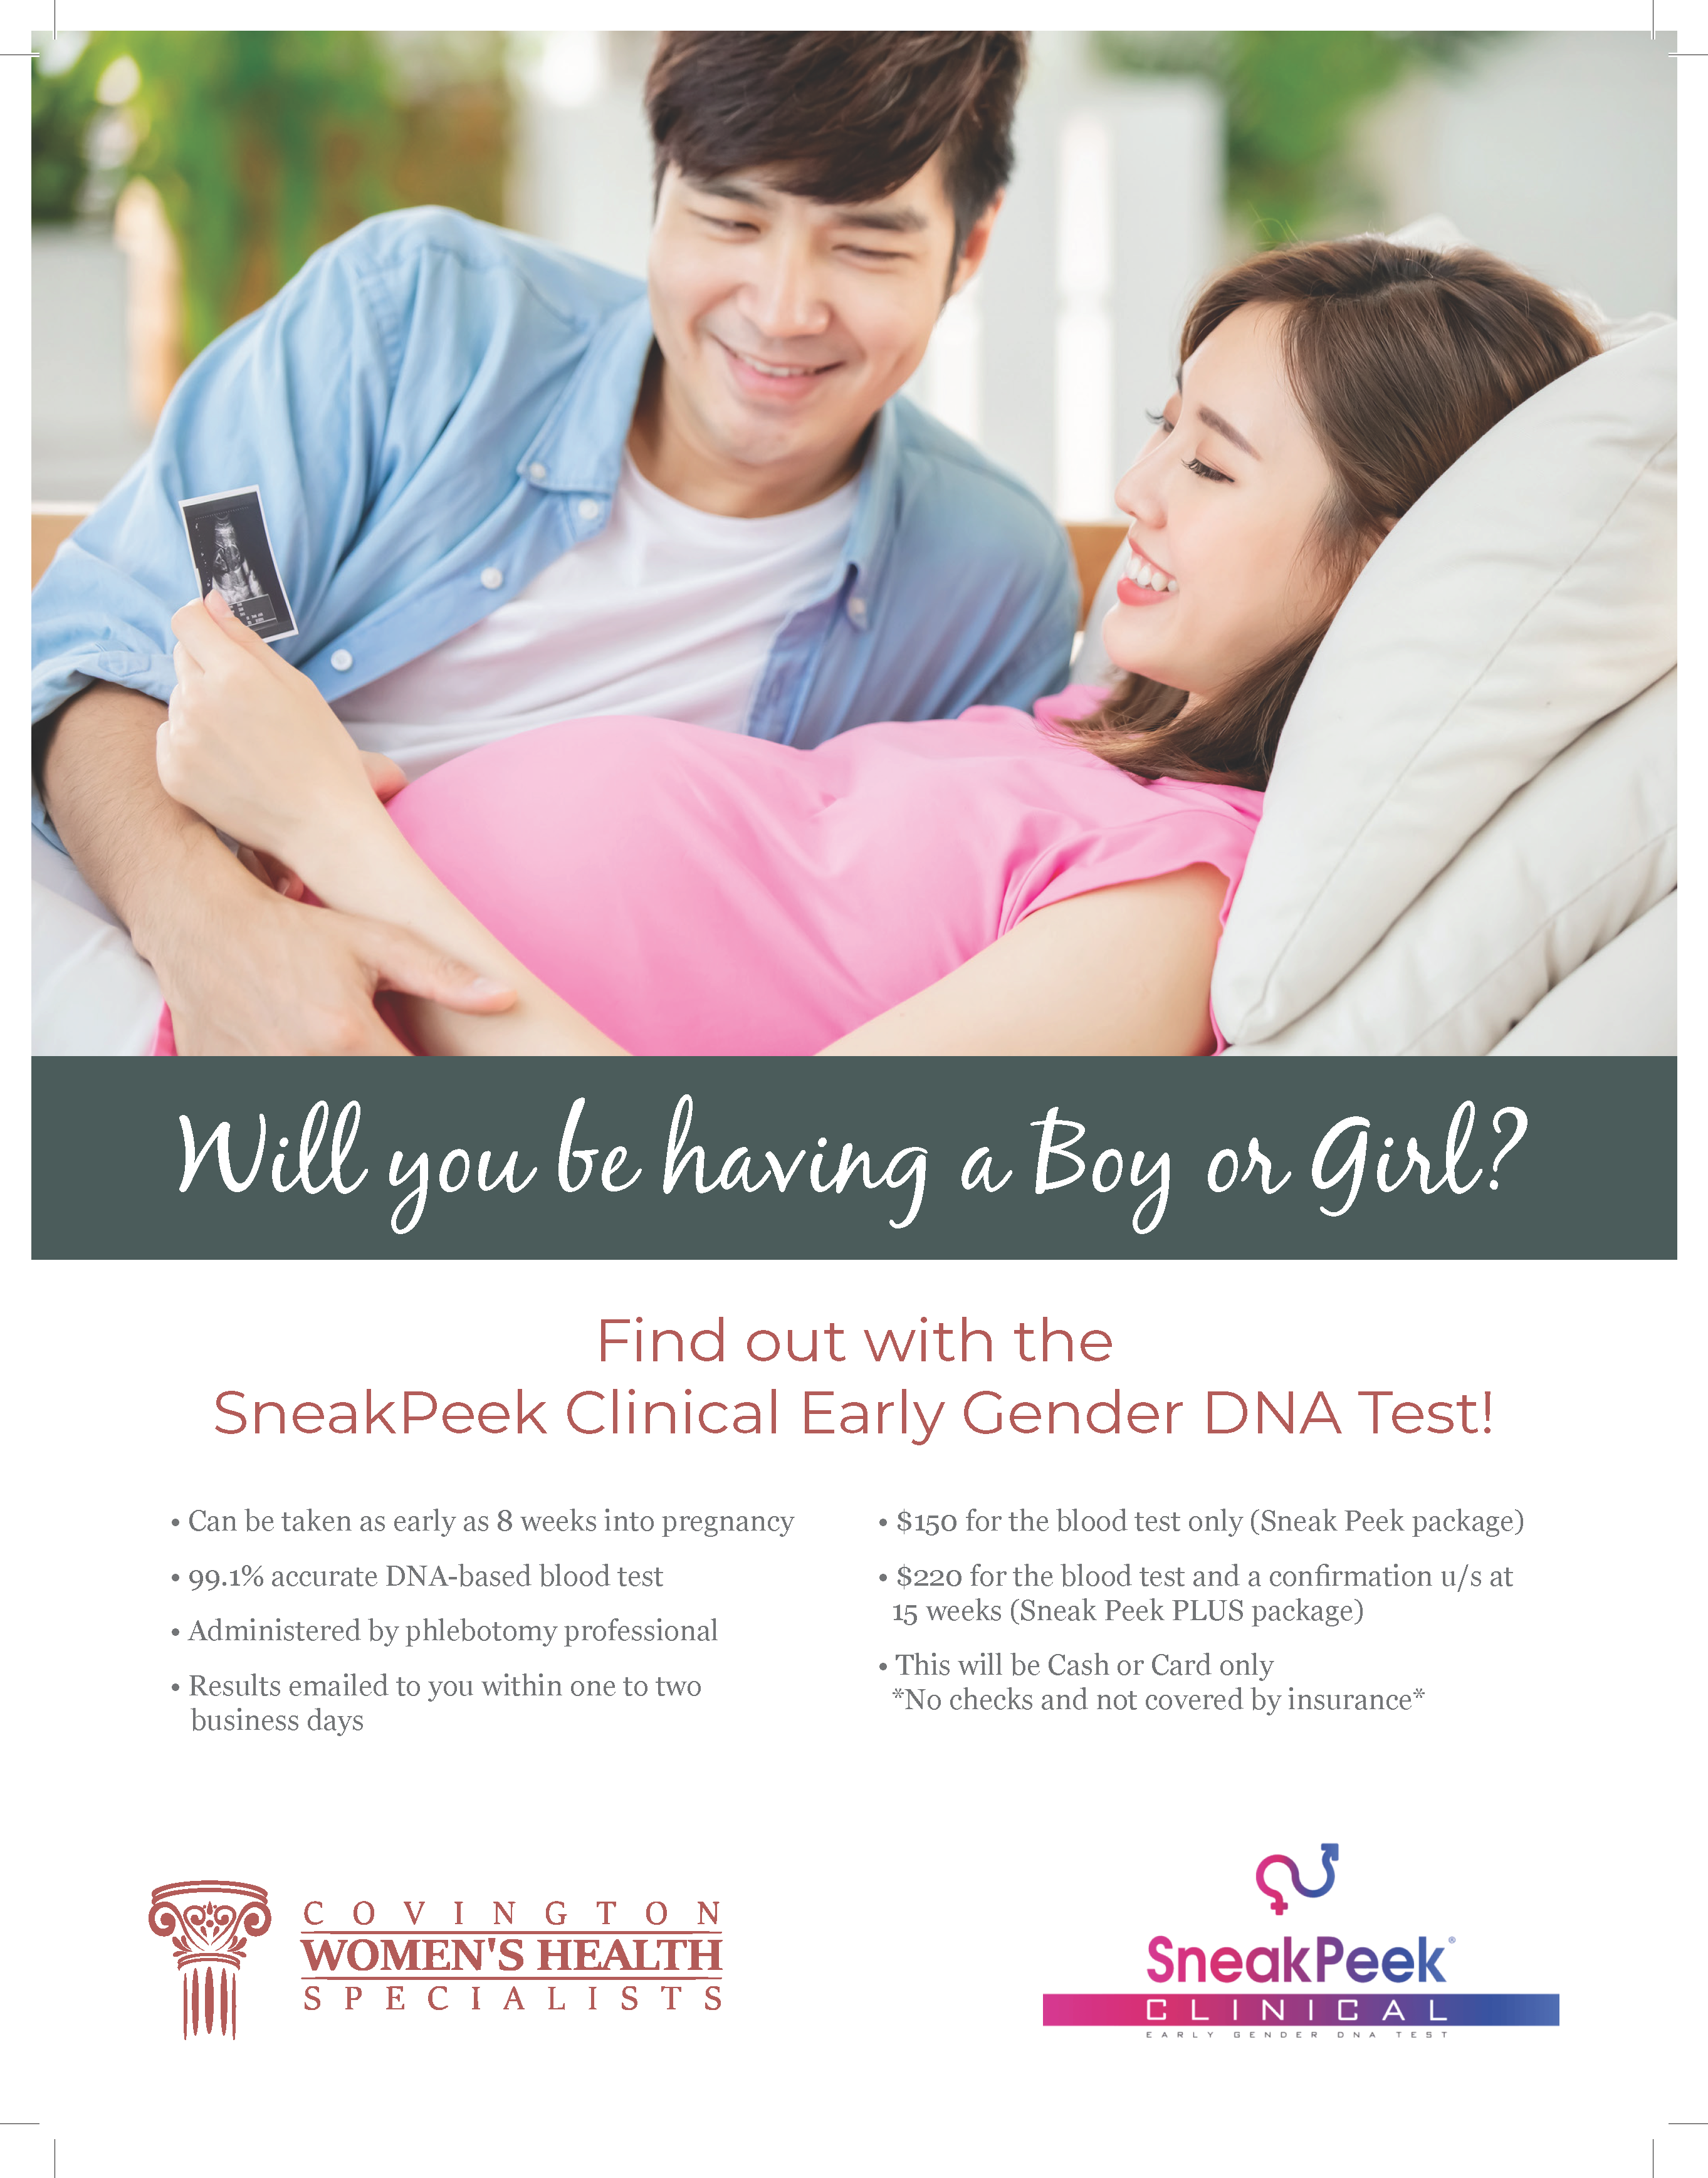 Flyer four of Covington Women's Health gender reveal service.